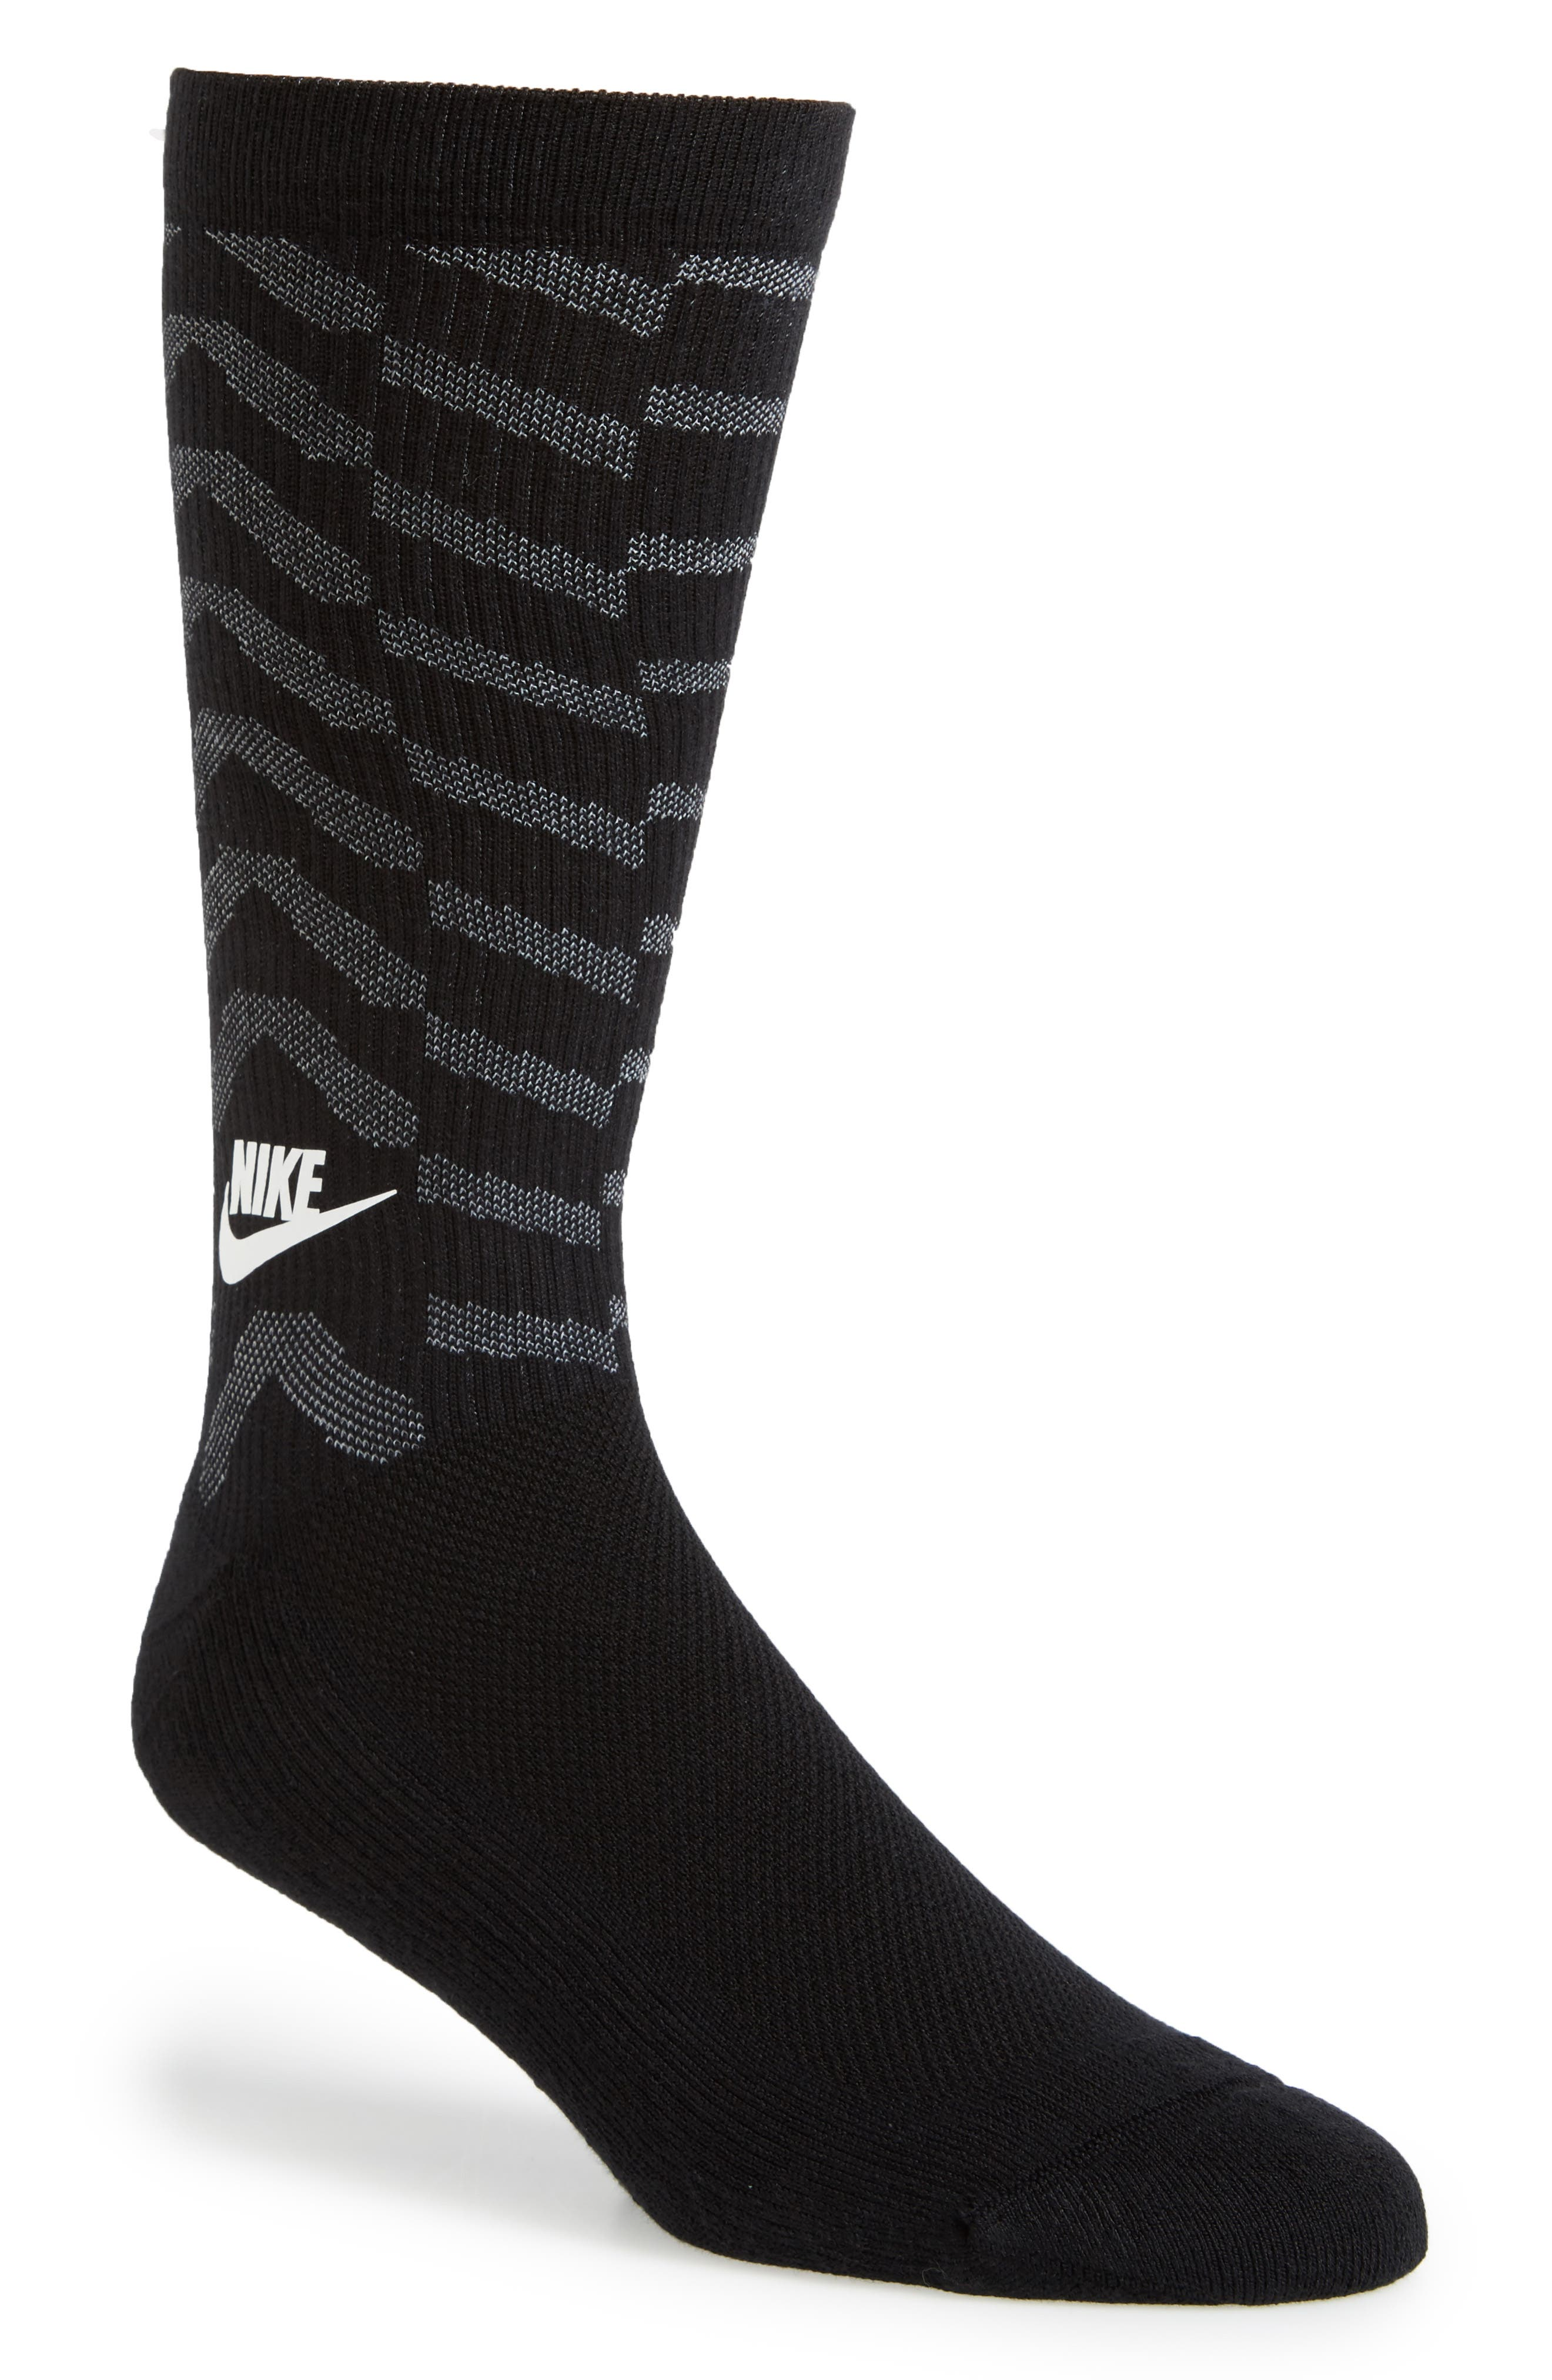 Main Image - Nike Statement Graphic Socks